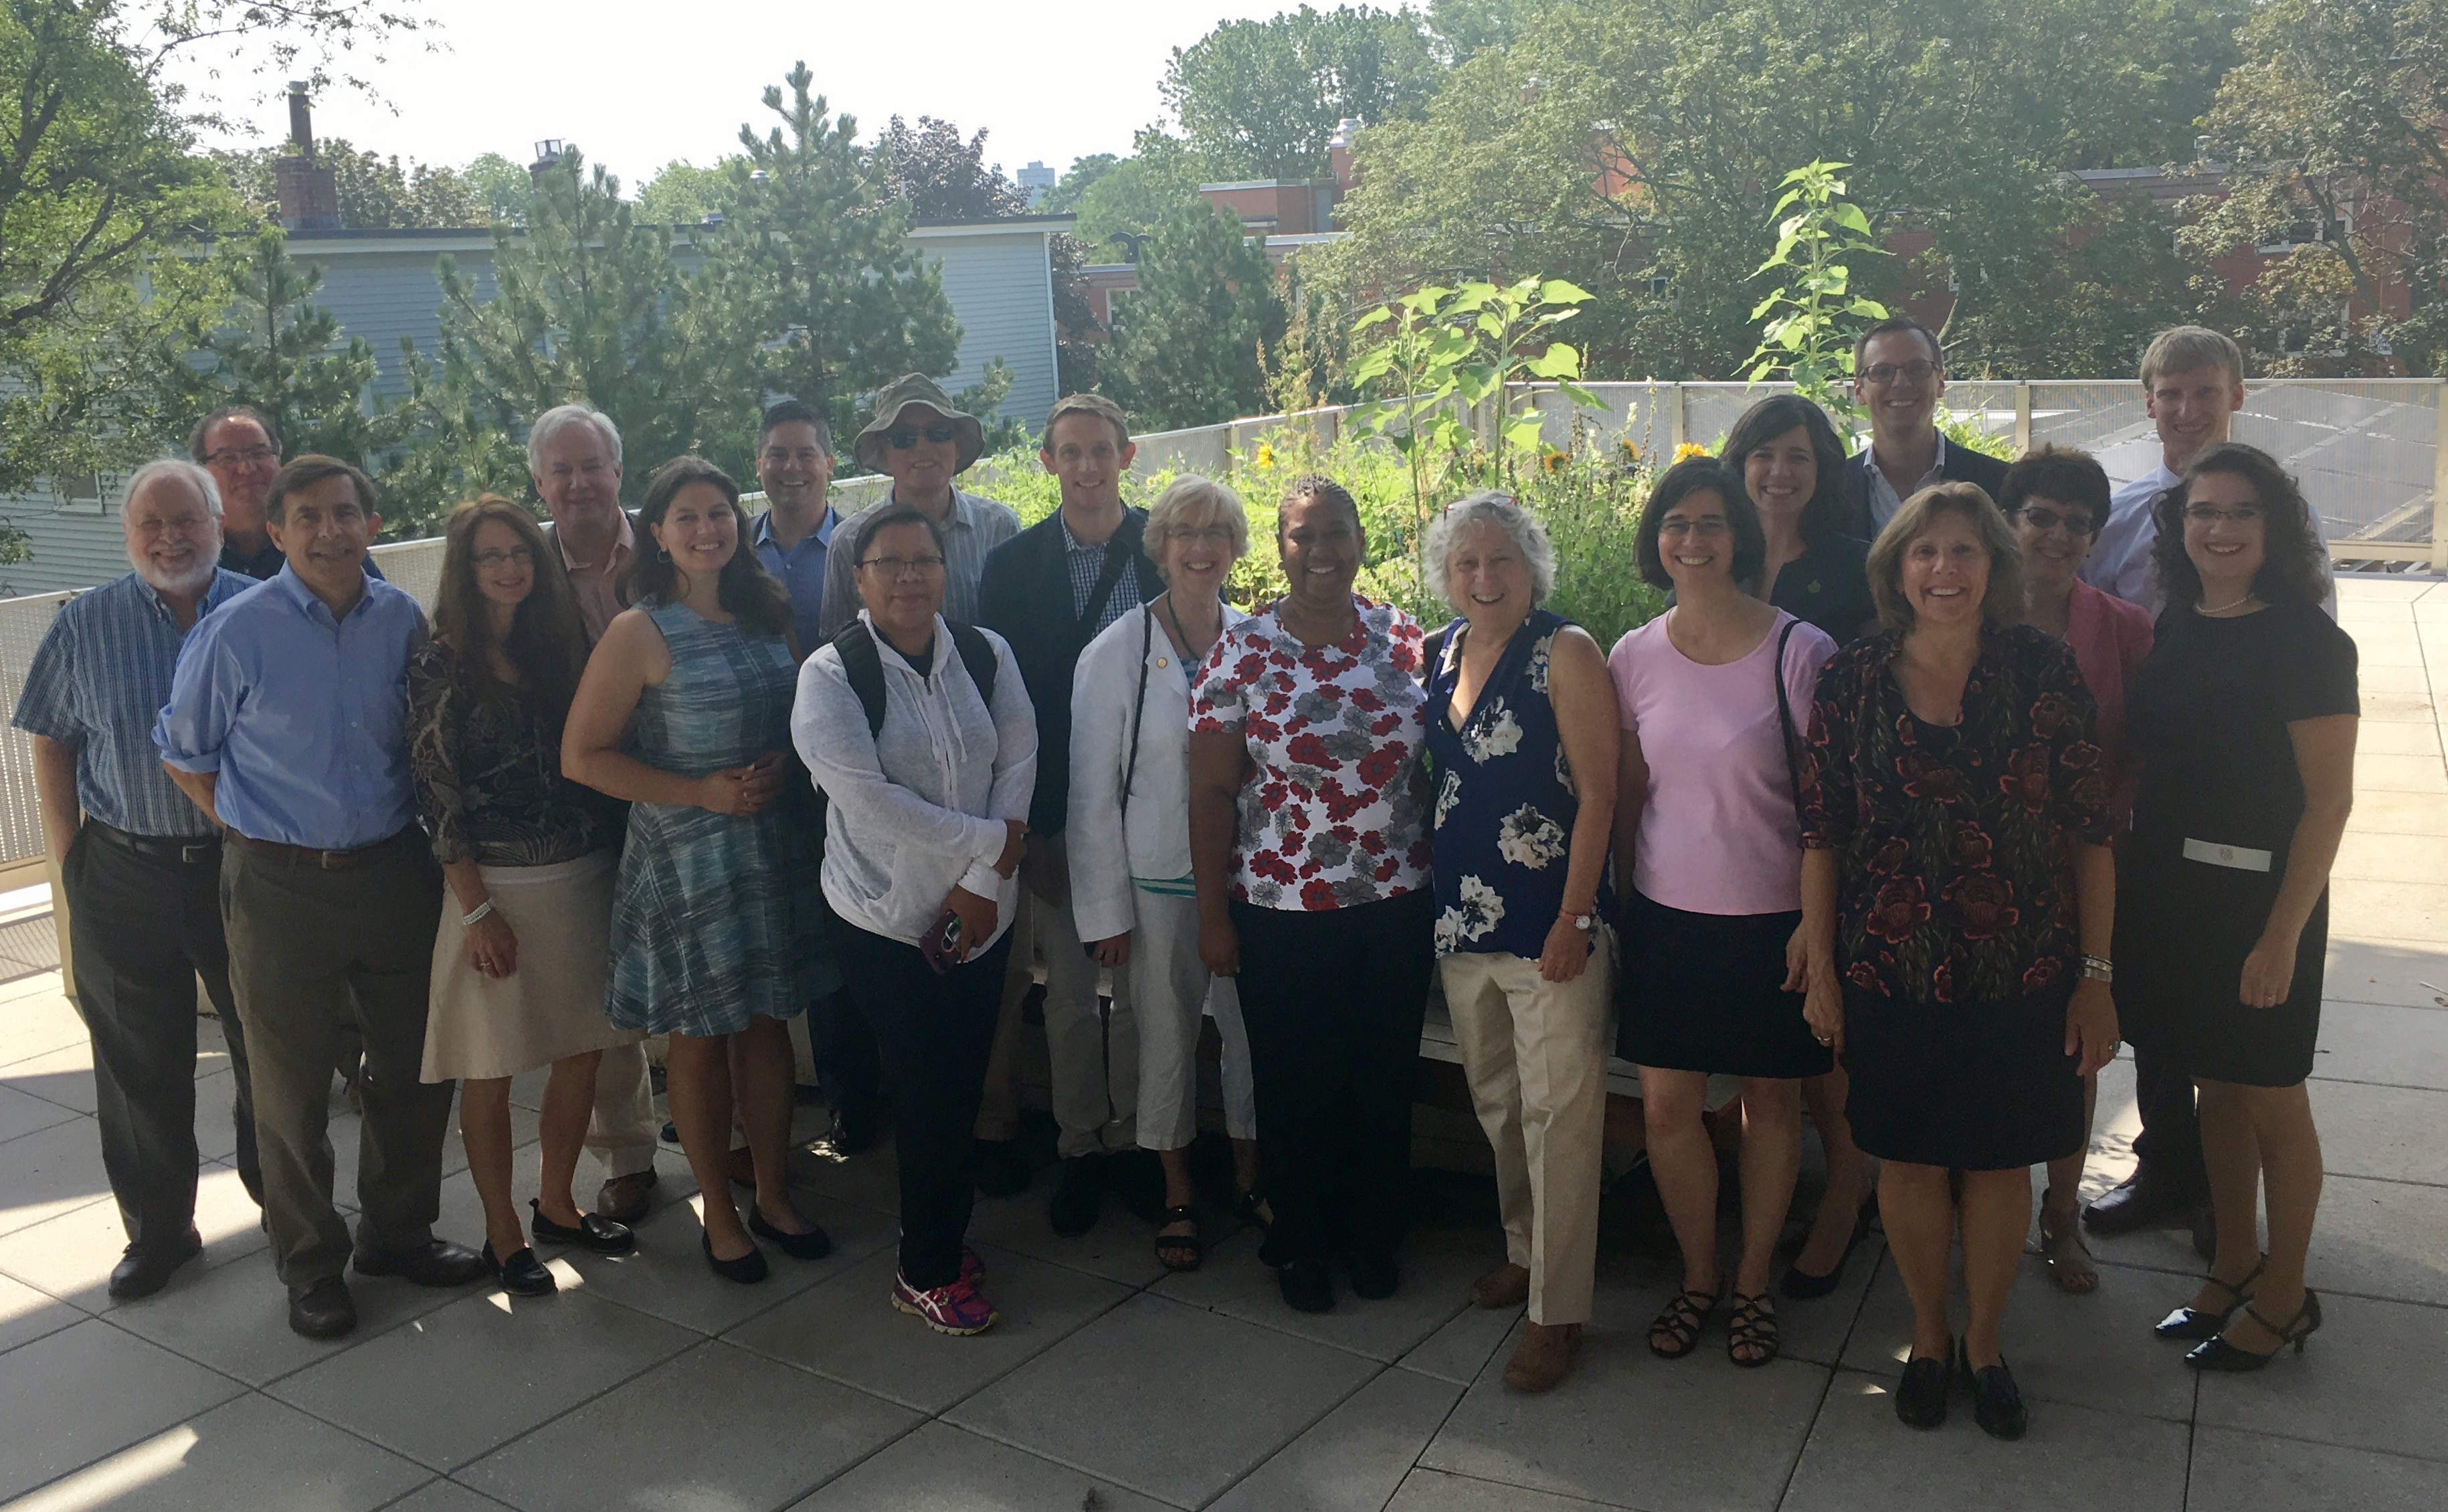 National Caucus of Environmental Legislators tour Boston school